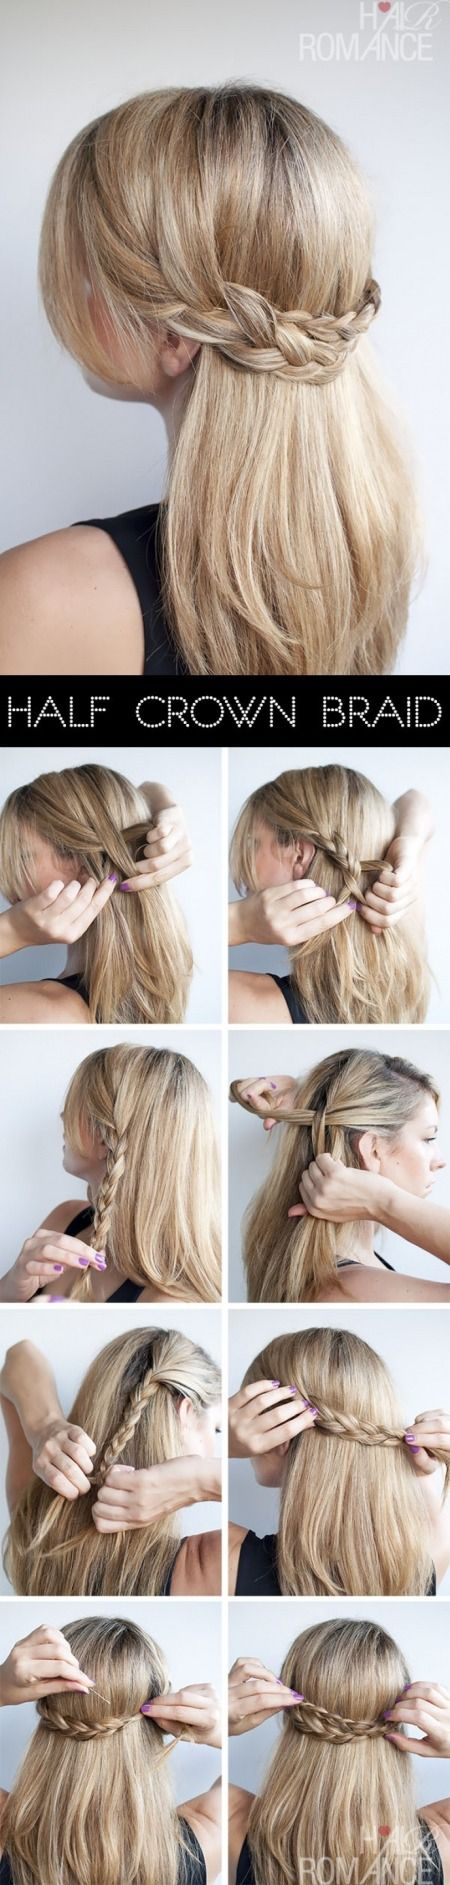 14 Super Easy Hairstyle Tutorials